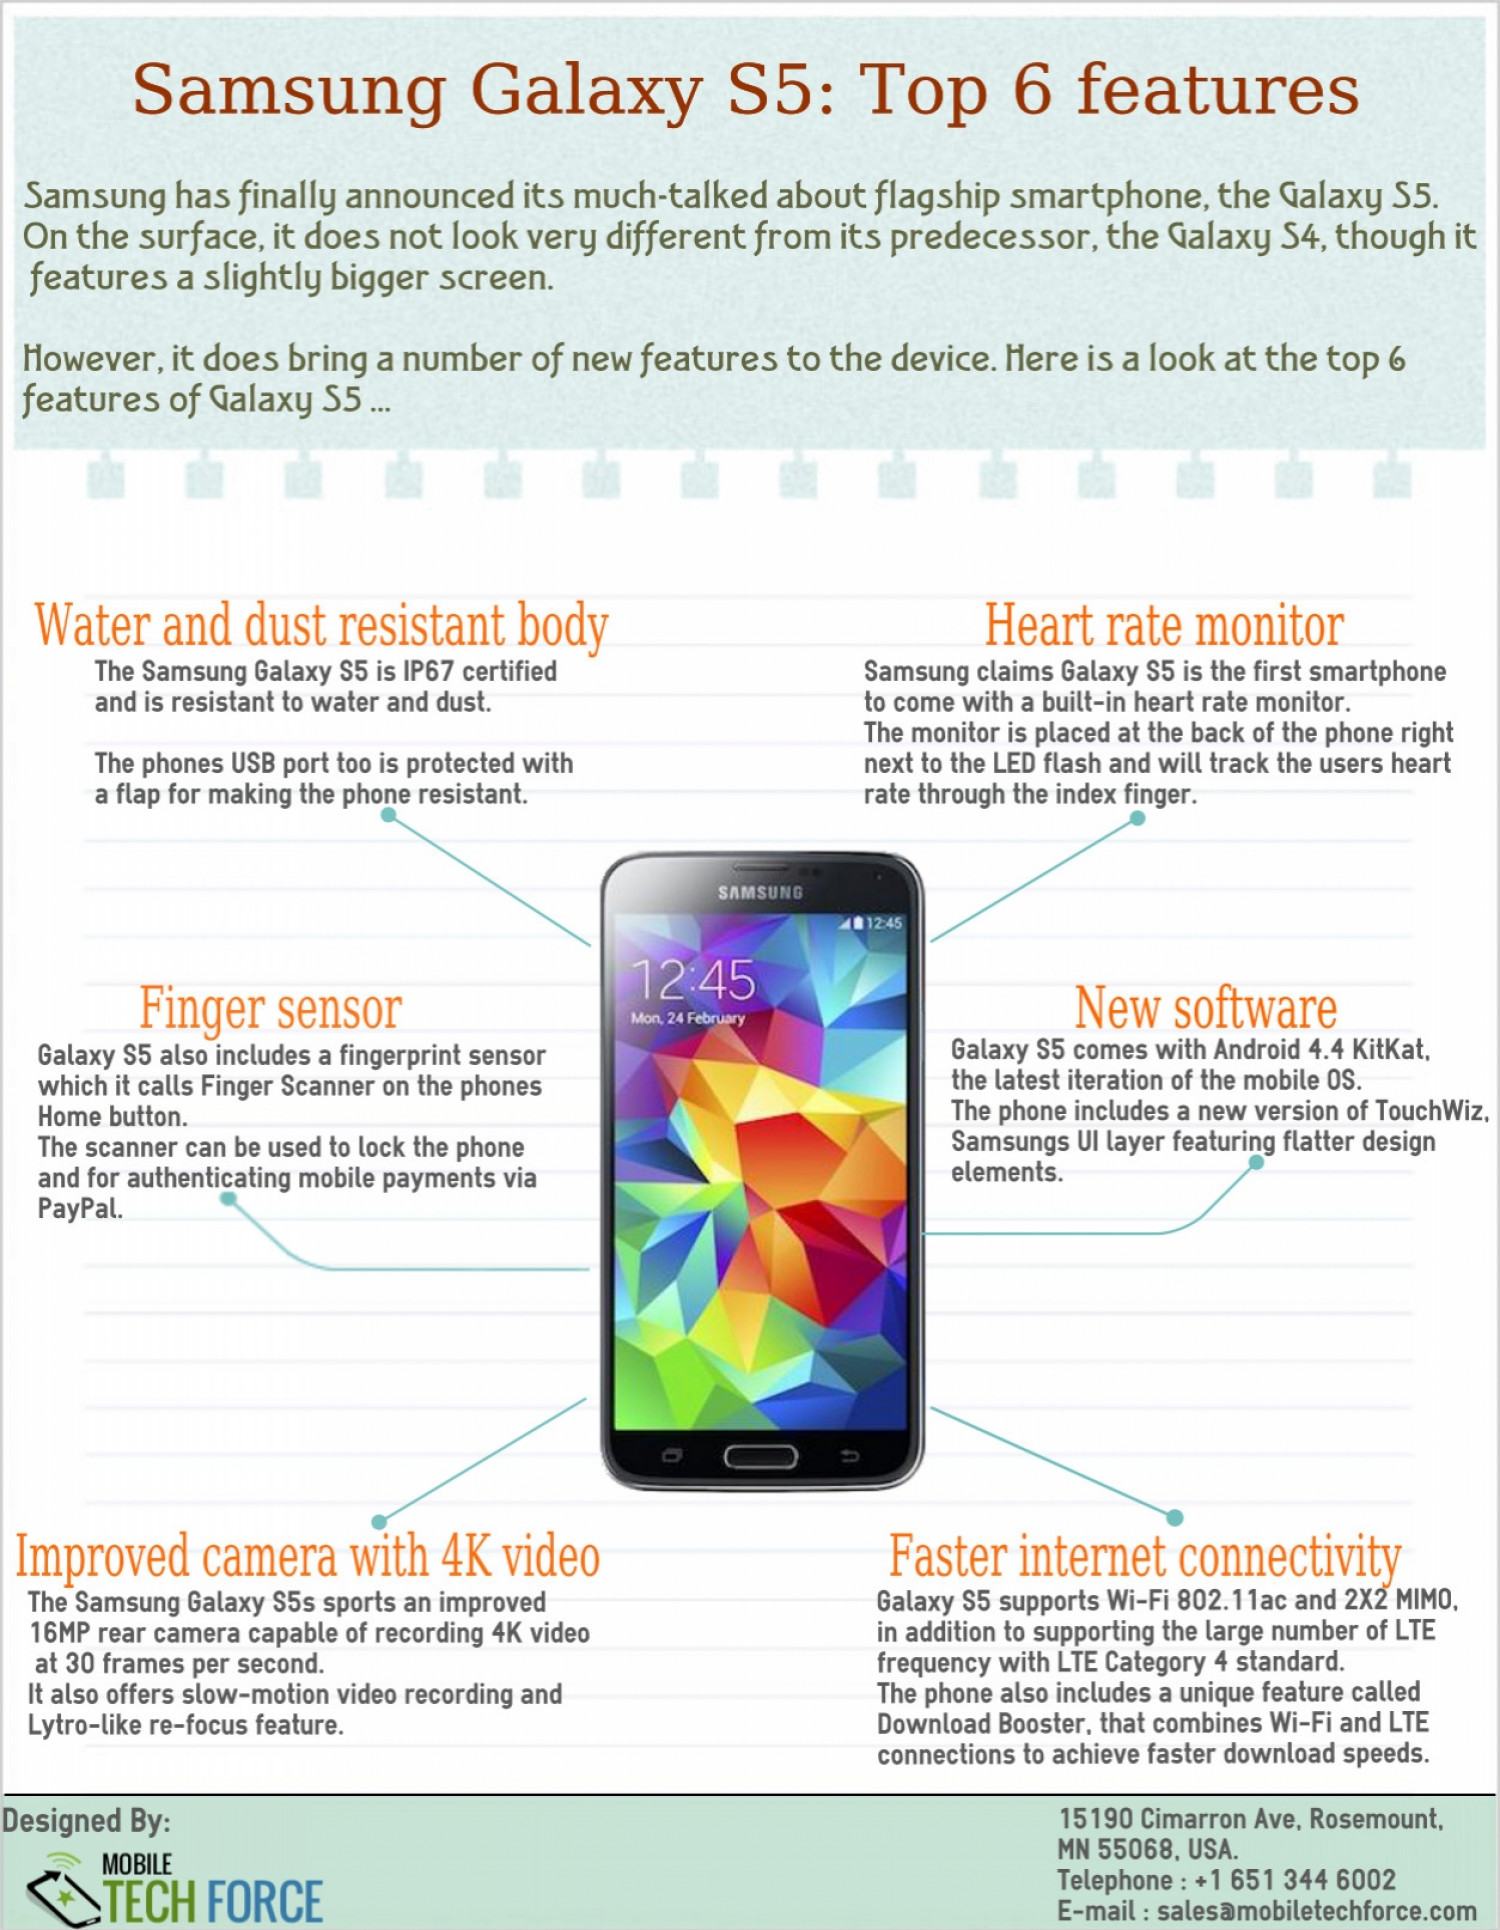 Samsung Galaxy S5 Top 6 Features Visual Ly